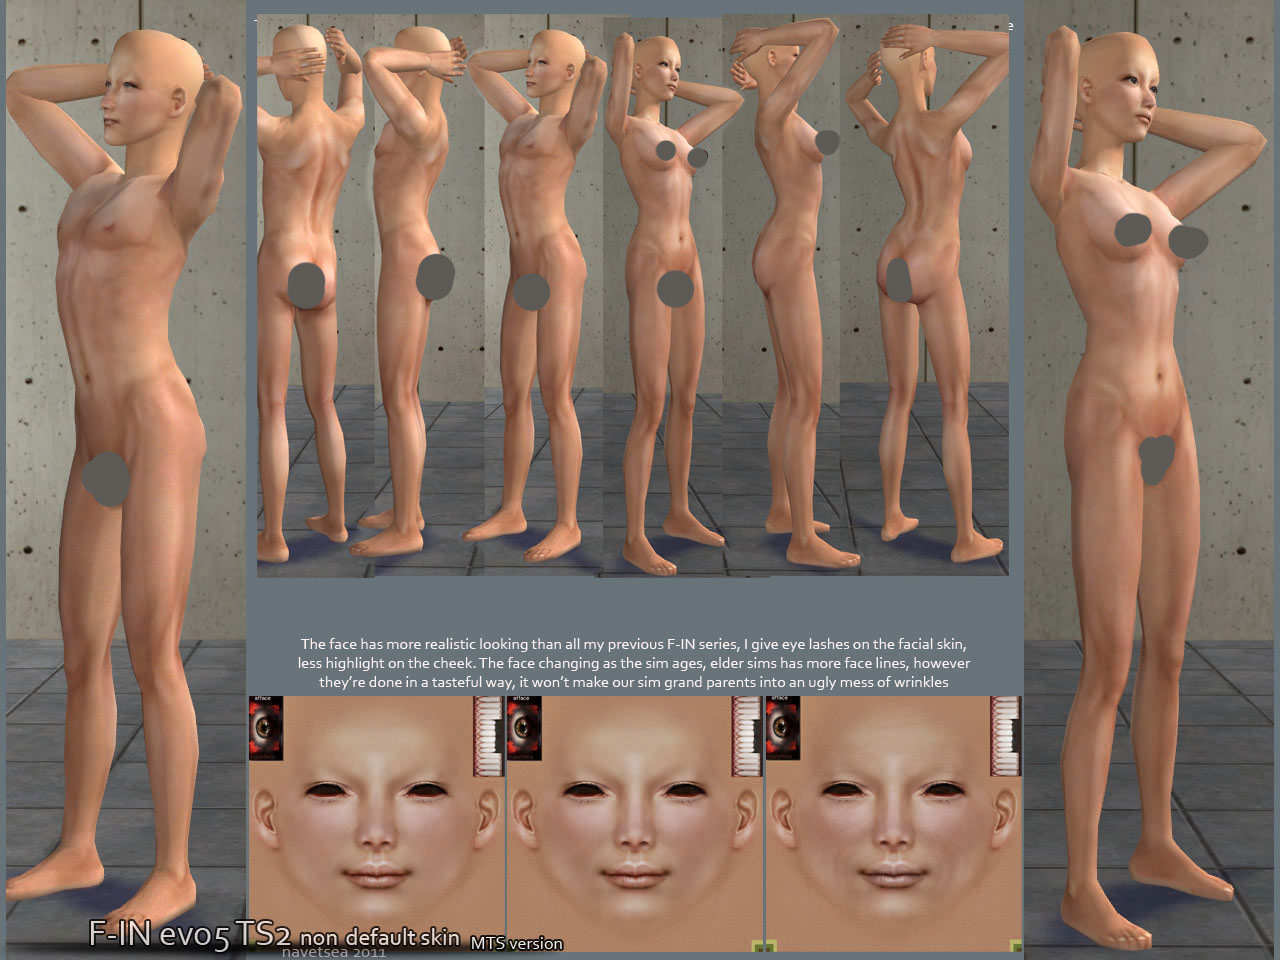 Sims 2 nude patches and cheats porn photos